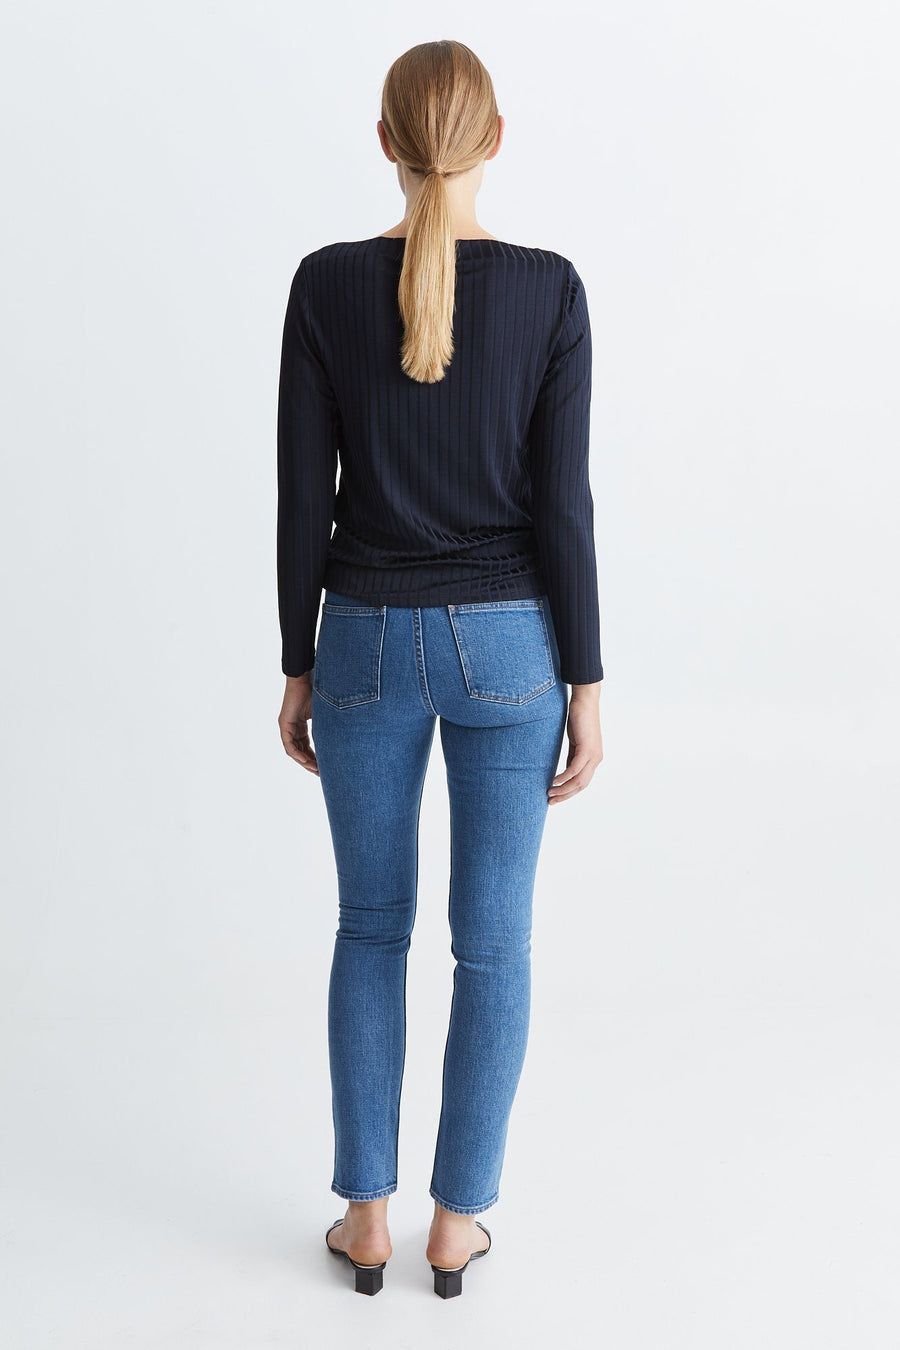 PENNY TOP - NAVY Top Stylein